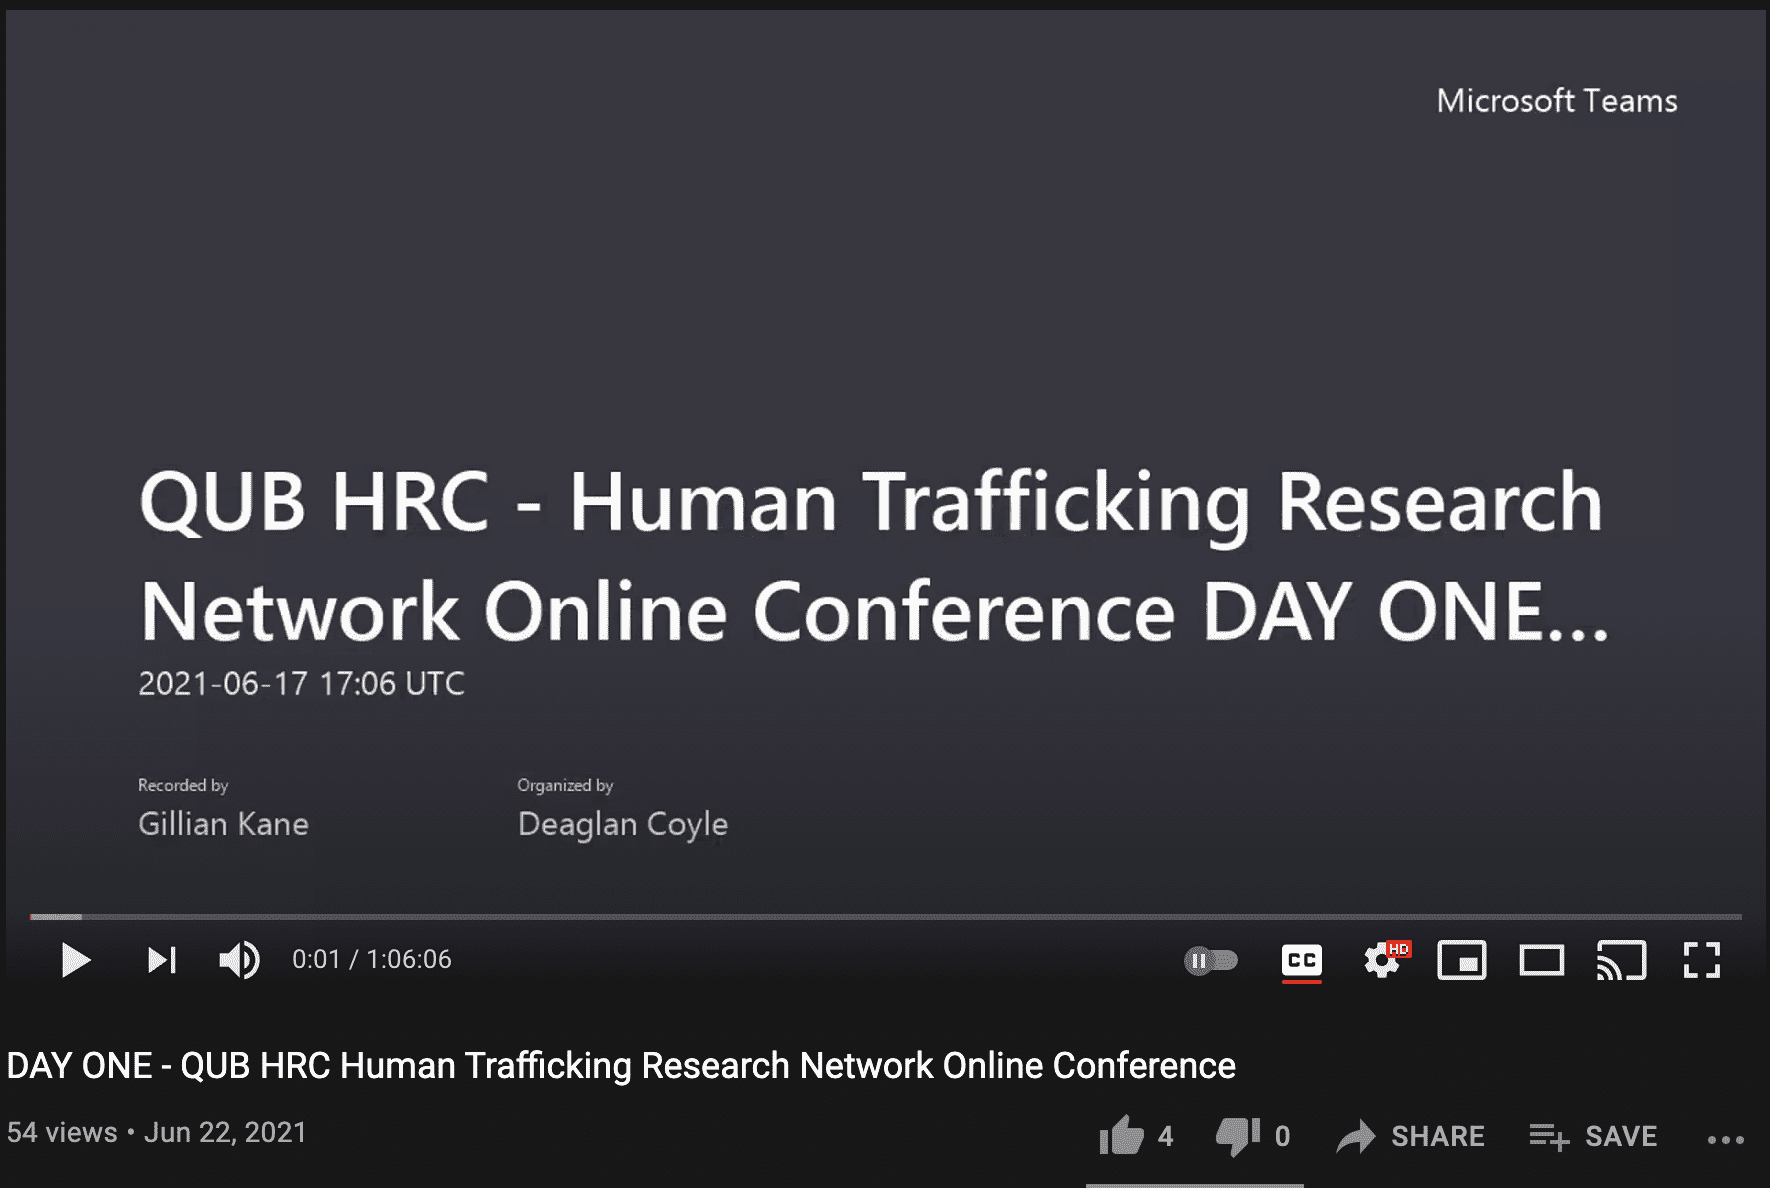 Human Trafficking Research Network Online Conference 2021